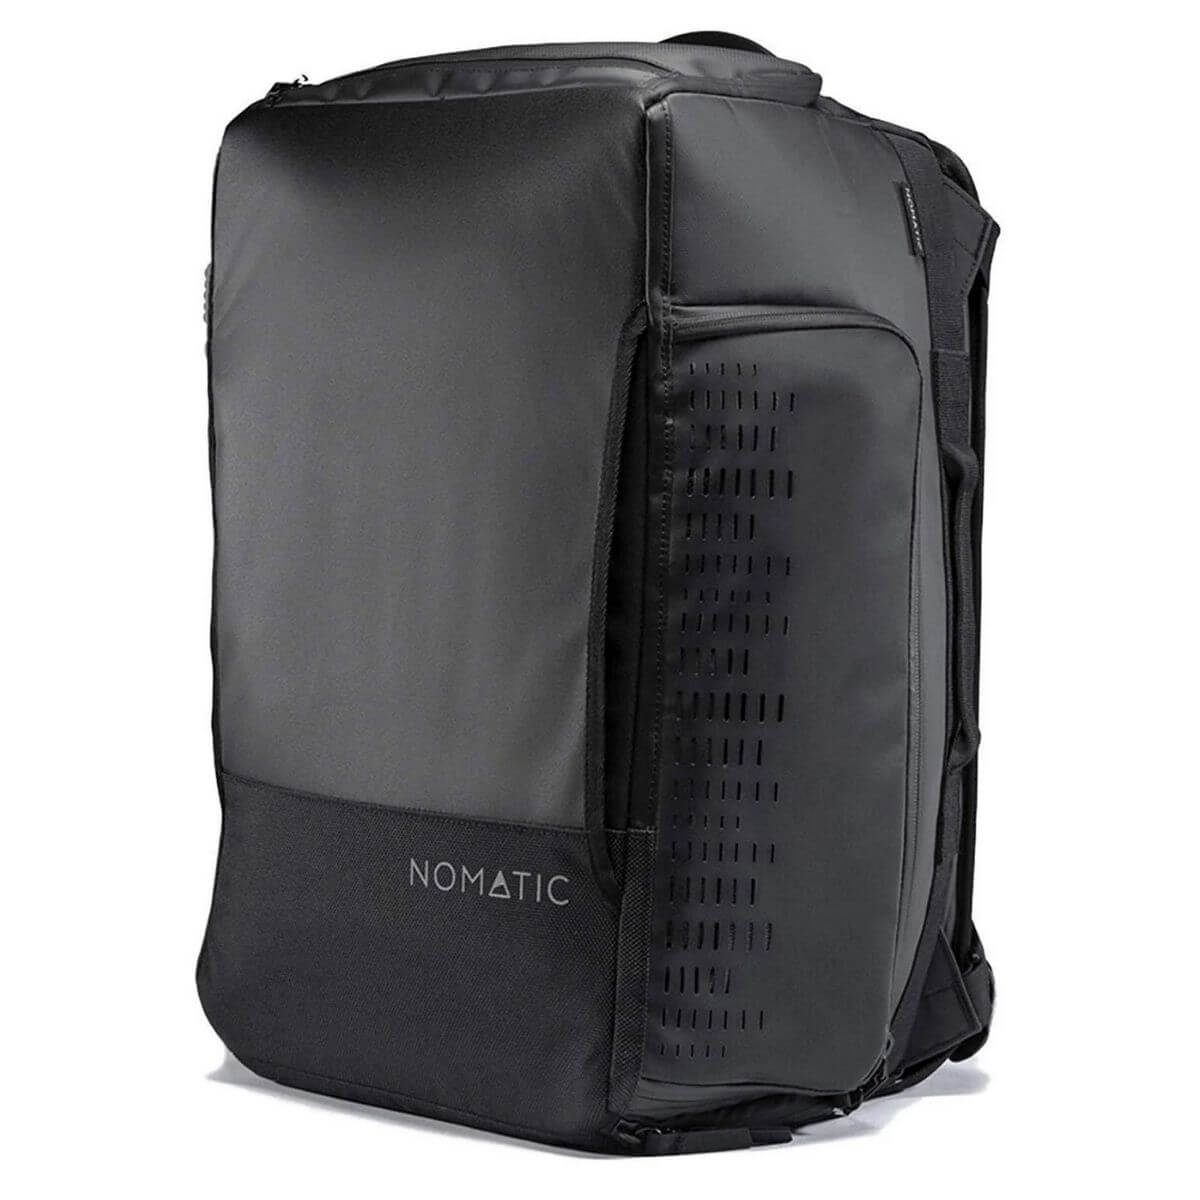 Black Nomatic travel bag.